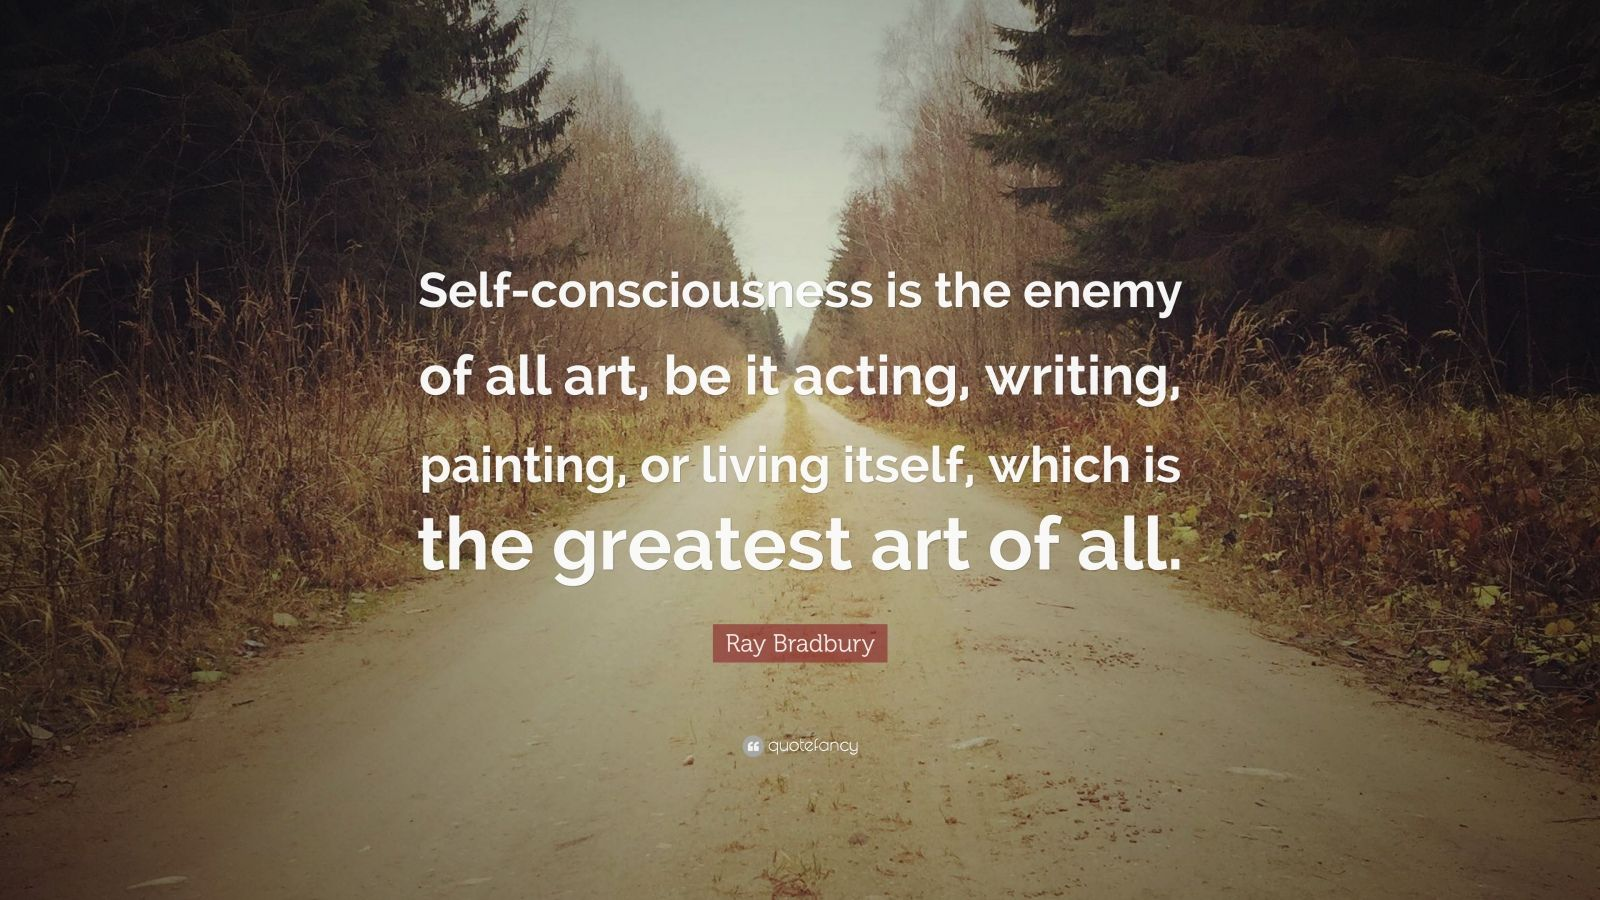 """Ray Bradbury Quote: """"Self-consciousness is the enemy of all art, be it acting, writing, painting, or living itself, which is the greatest art of all."""""""